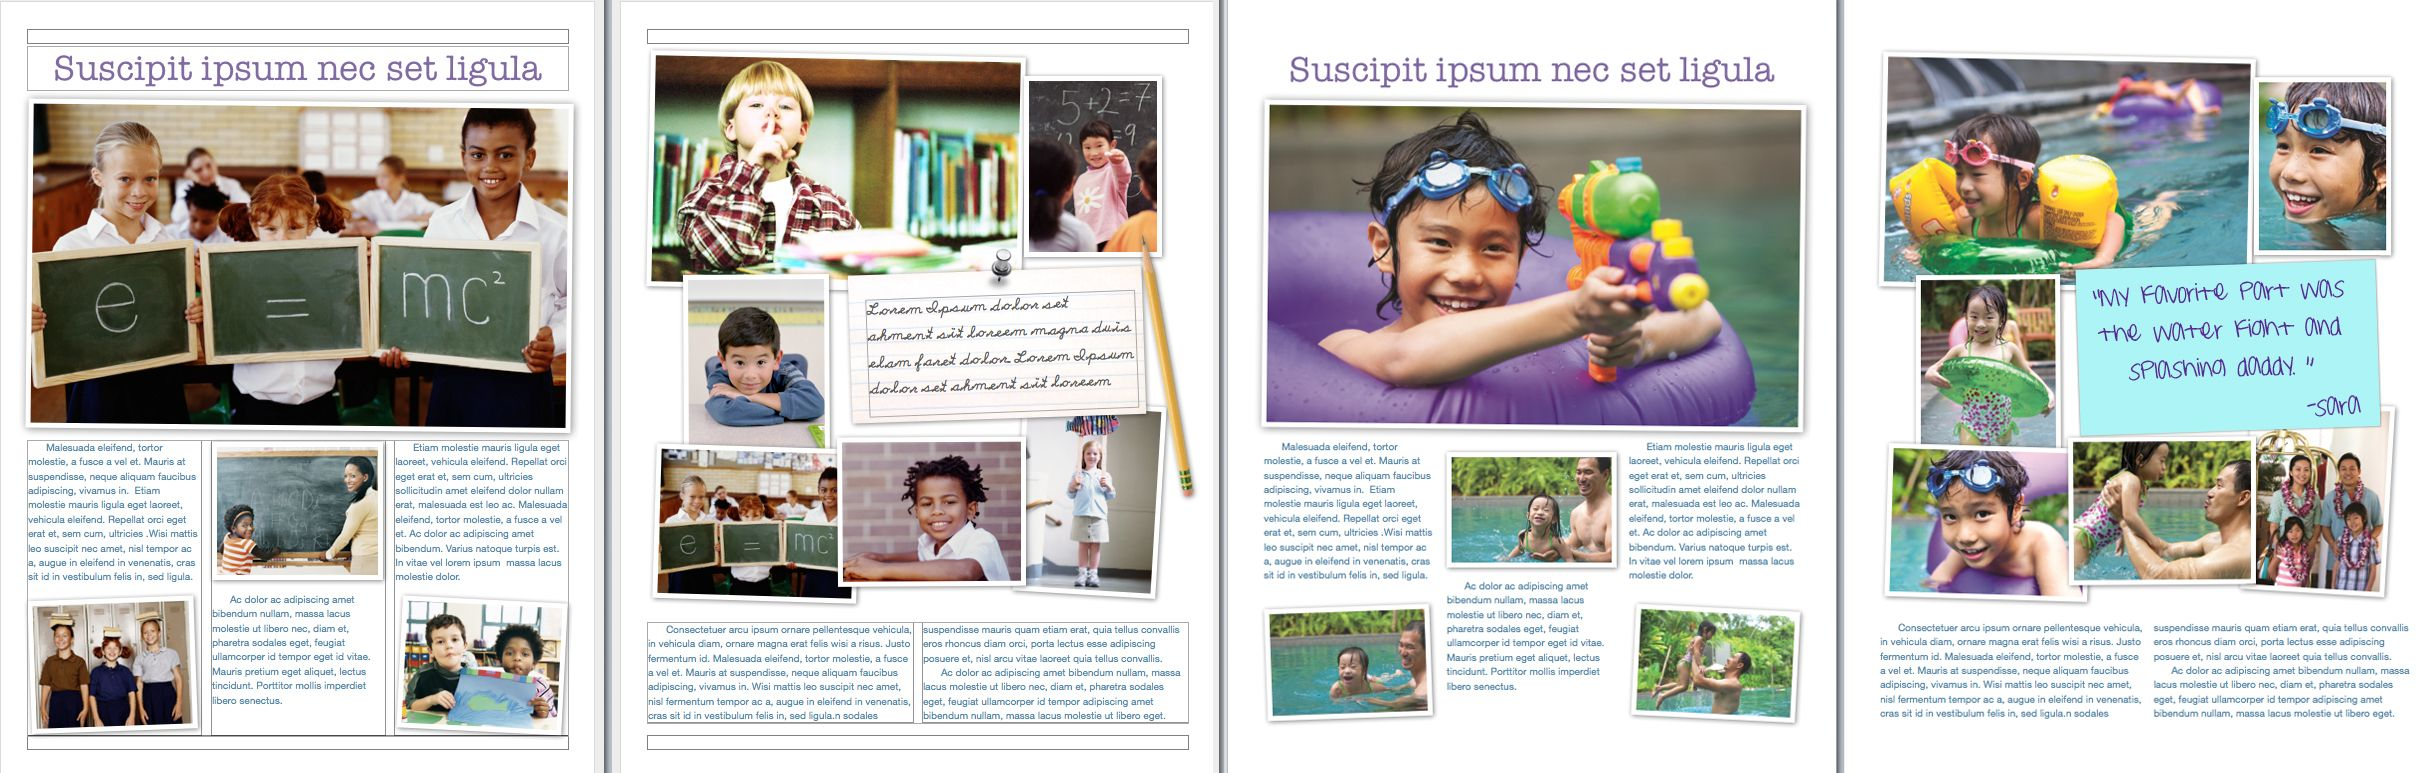 publisher magazine layout templates microsoft word also has some great newsletter templates that